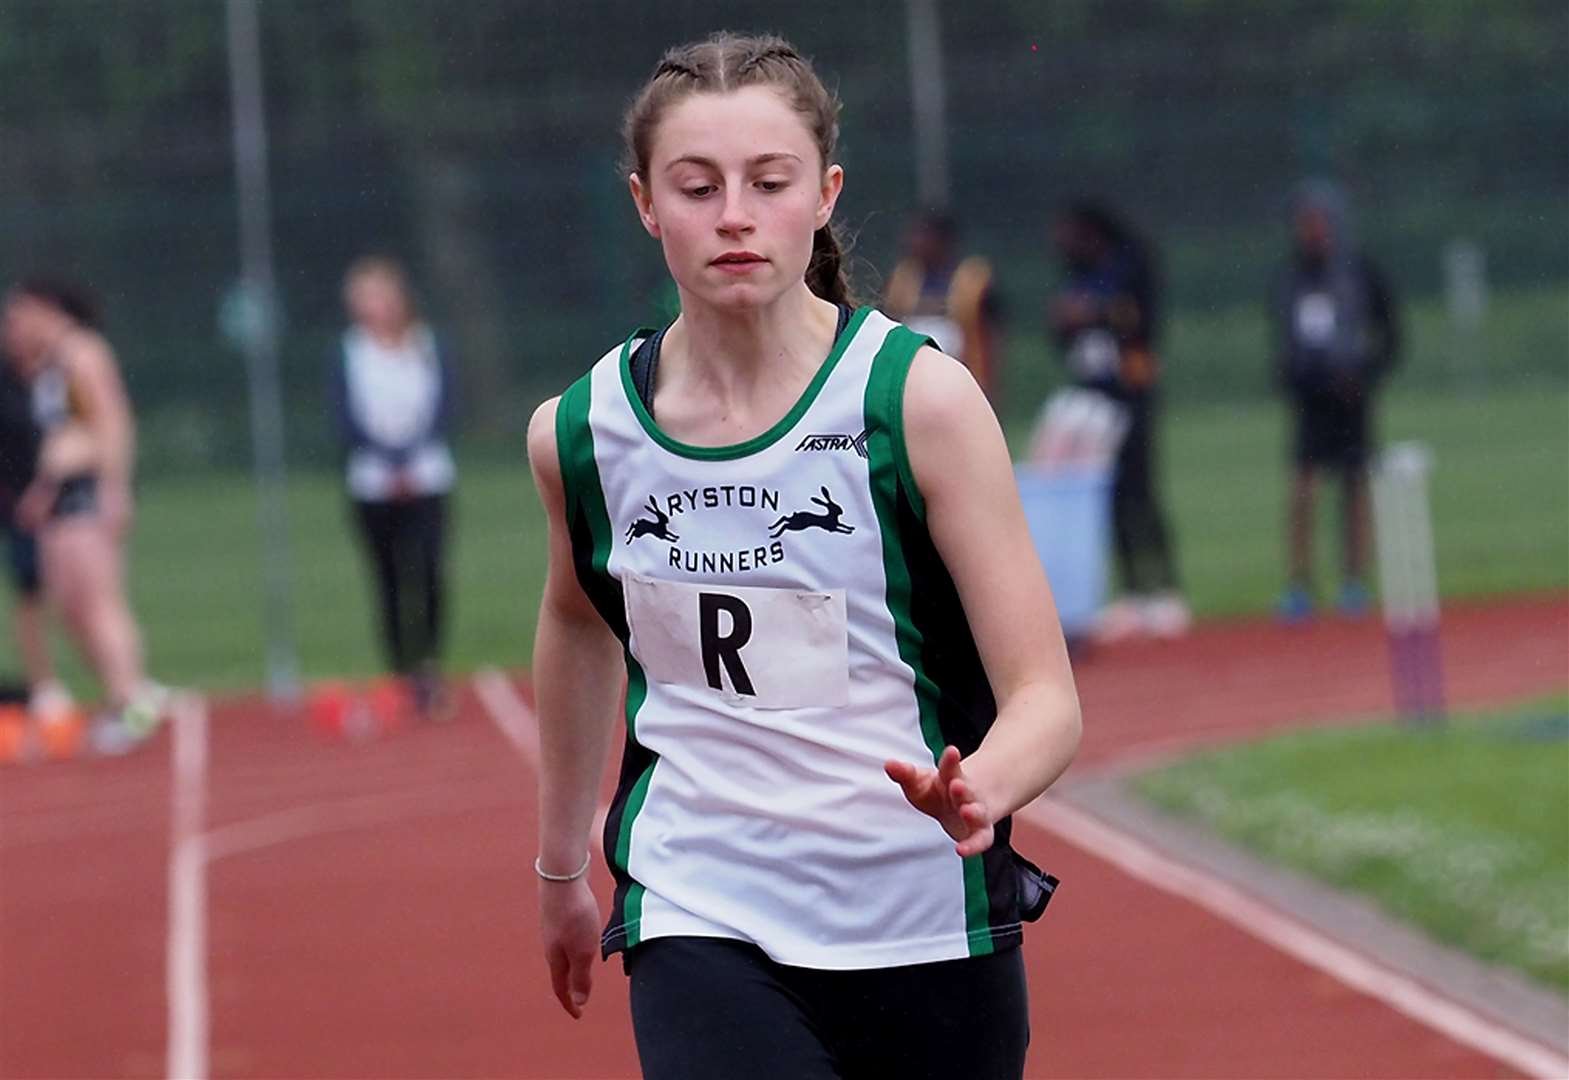 Lauren Moyse leaps to new record as Ryston Runners bag second place